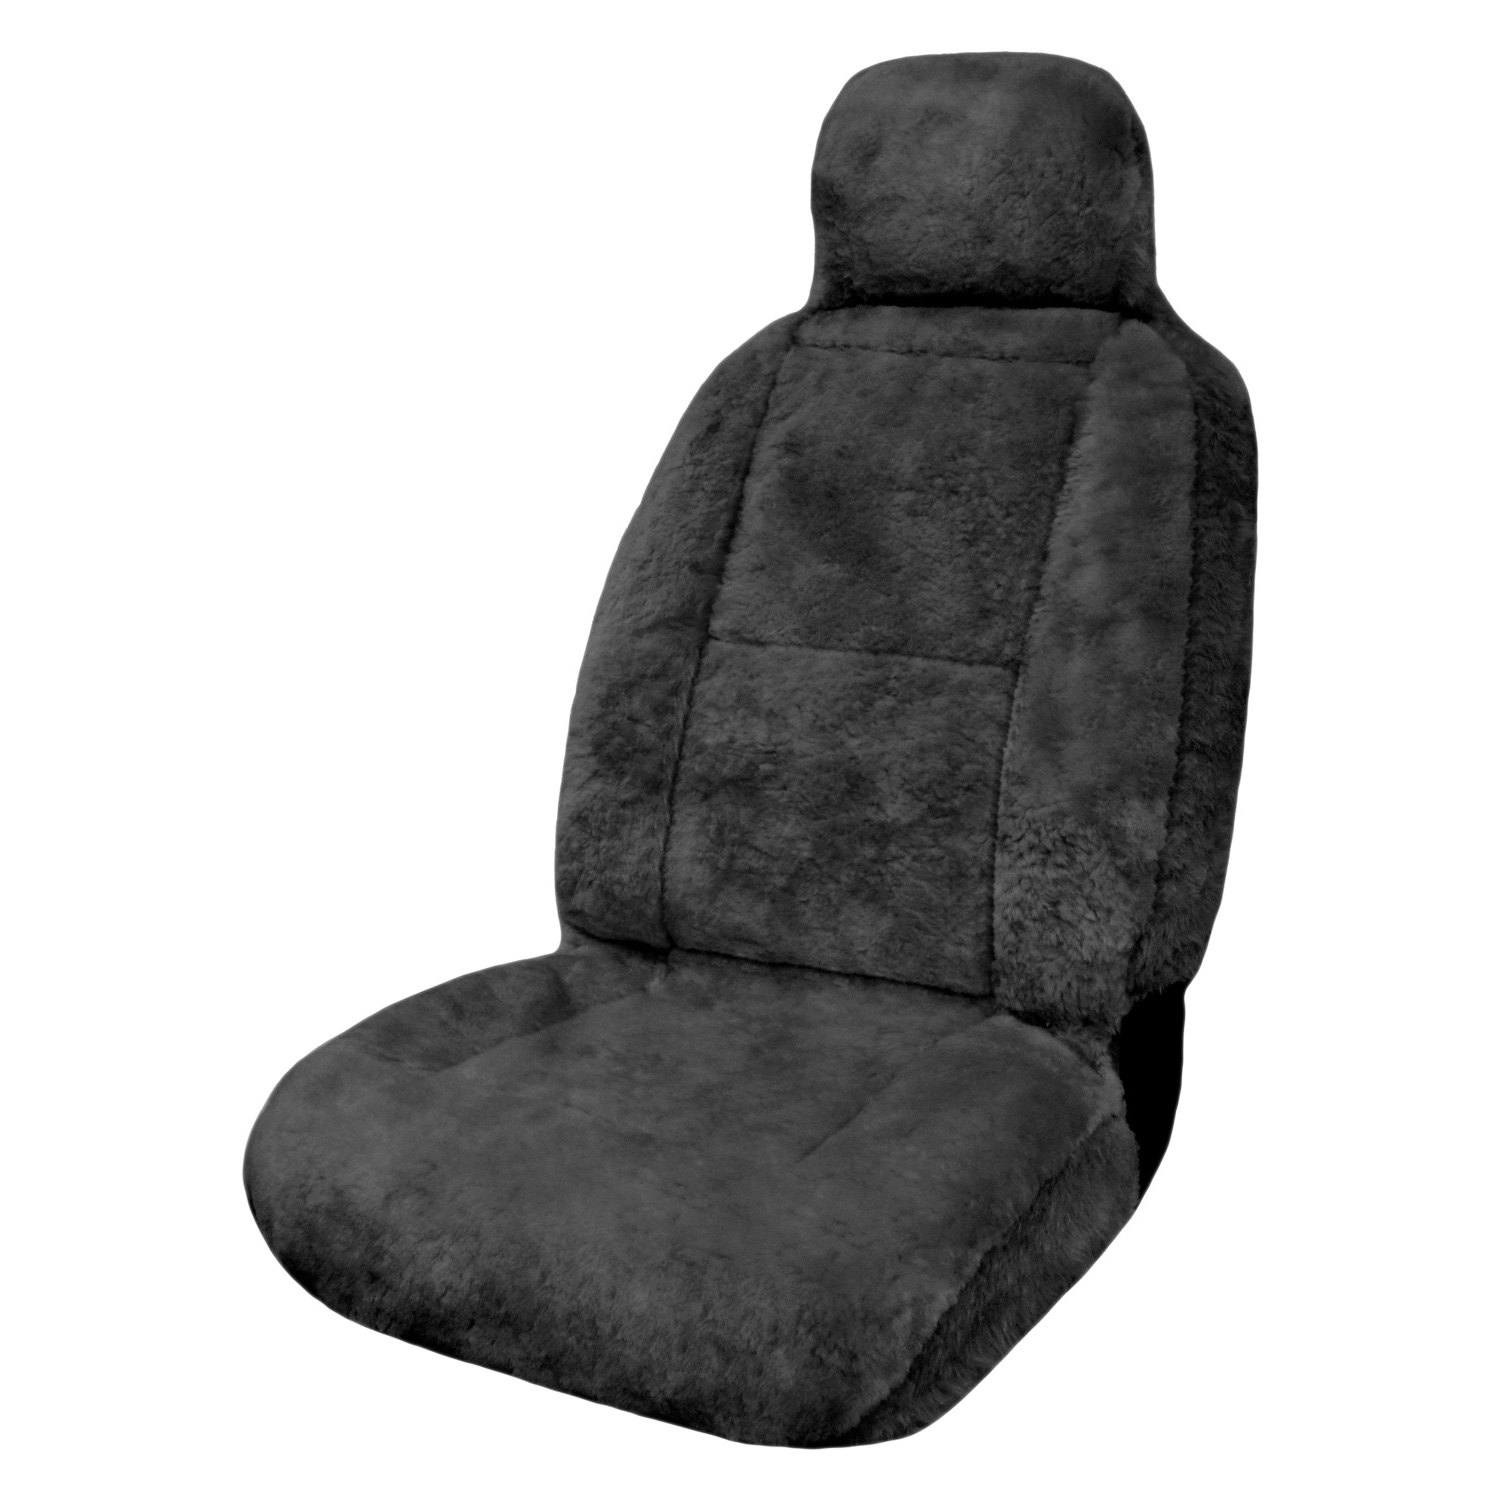 Eurow® - XL Design Premium Pelt Gray Sheepskin Seat Cover